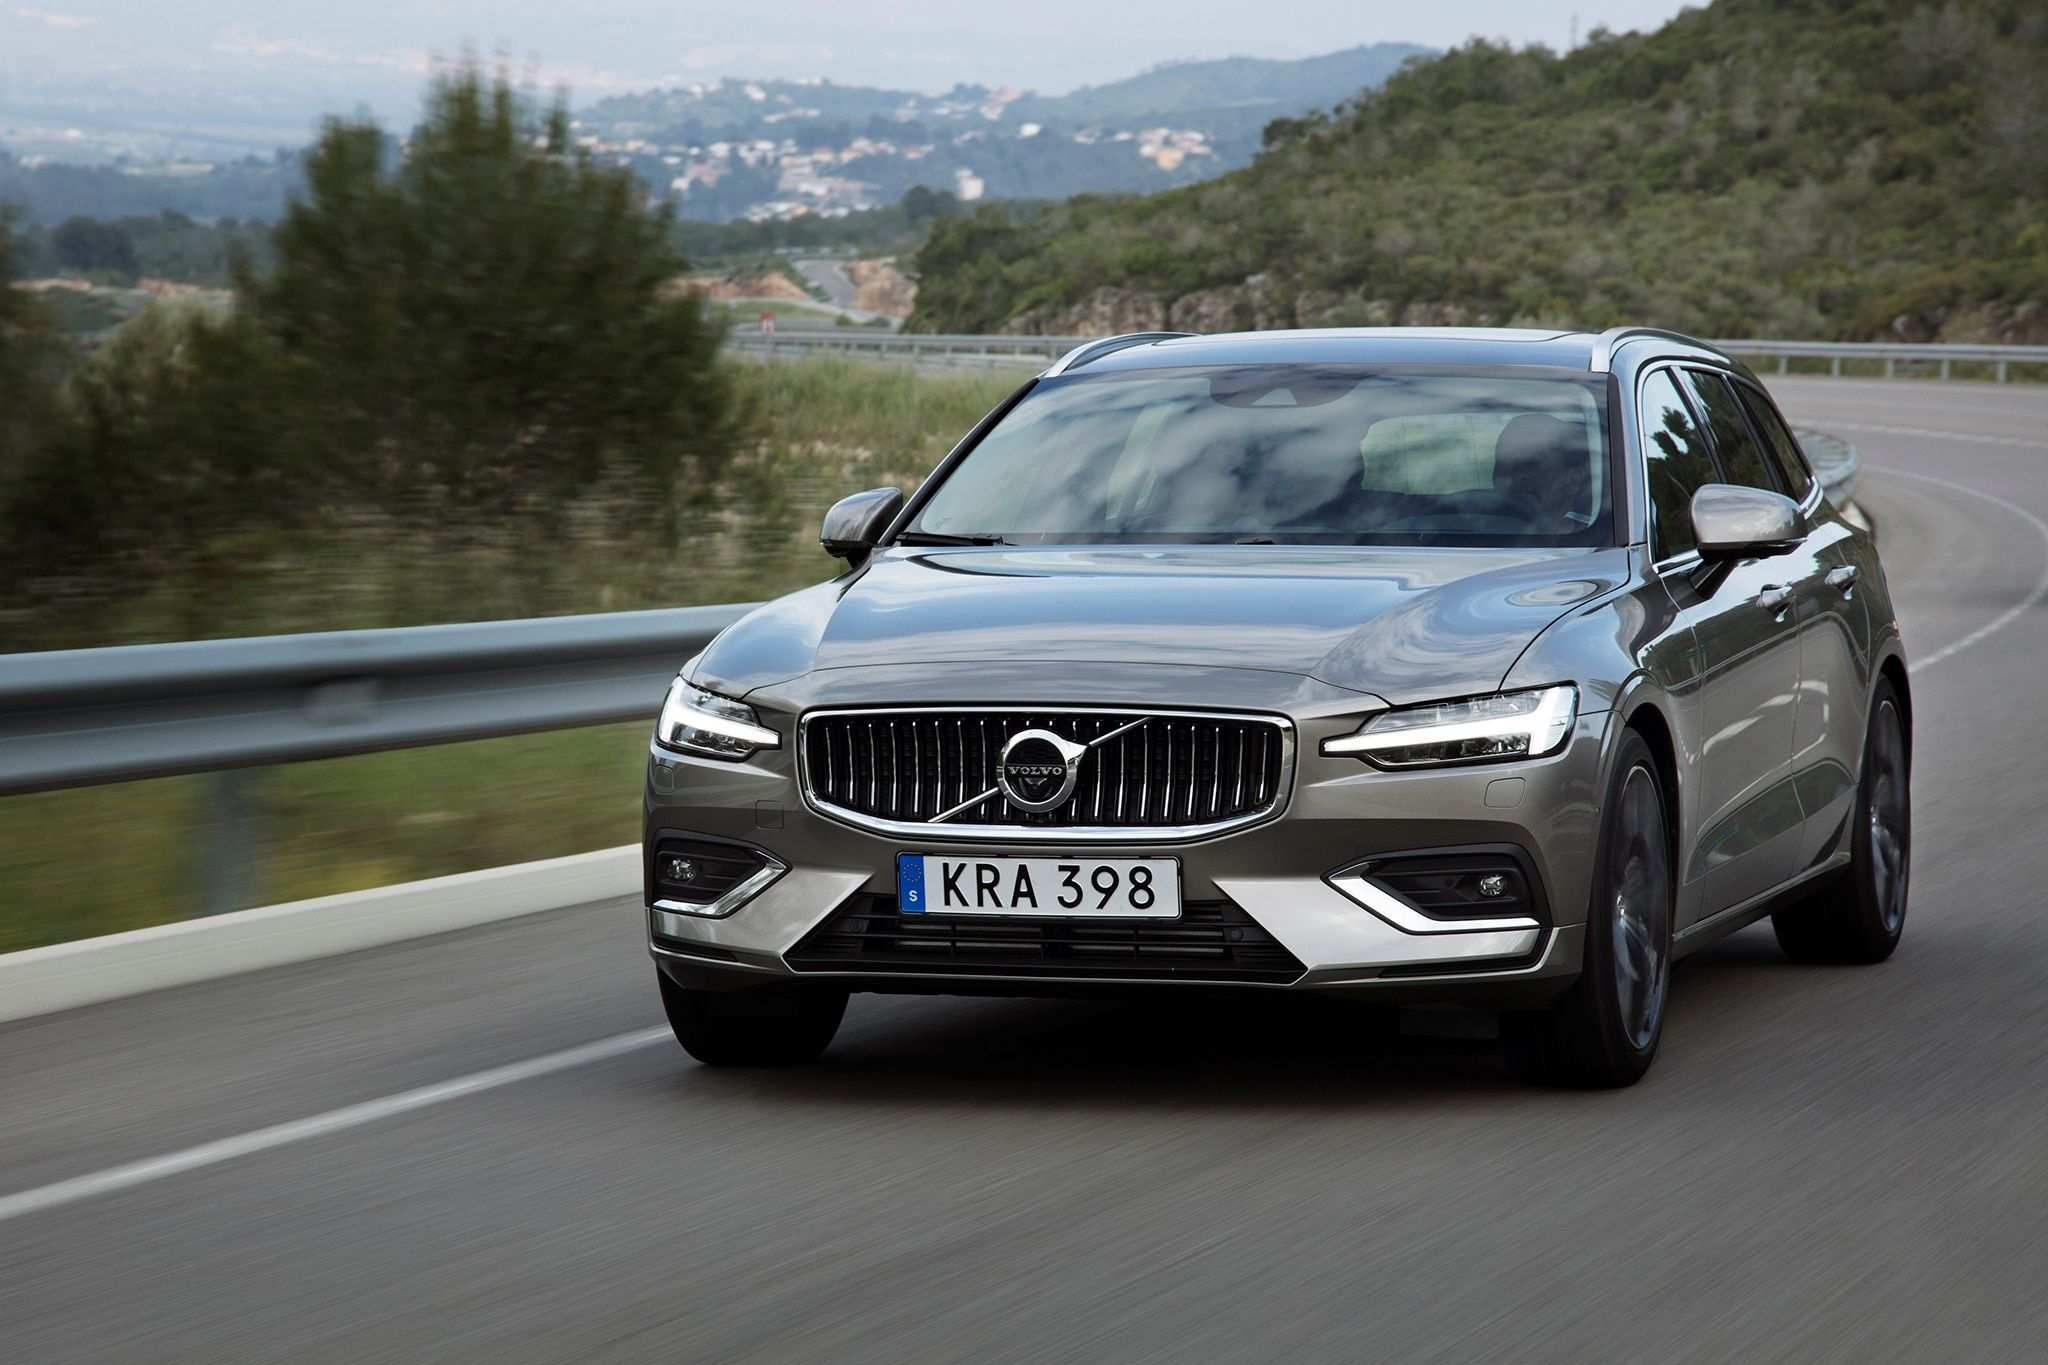 62 Great Volvo 2019 Station Wagon Release Date Exterior and Interior for Volvo 2019 Station Wagon Release Date